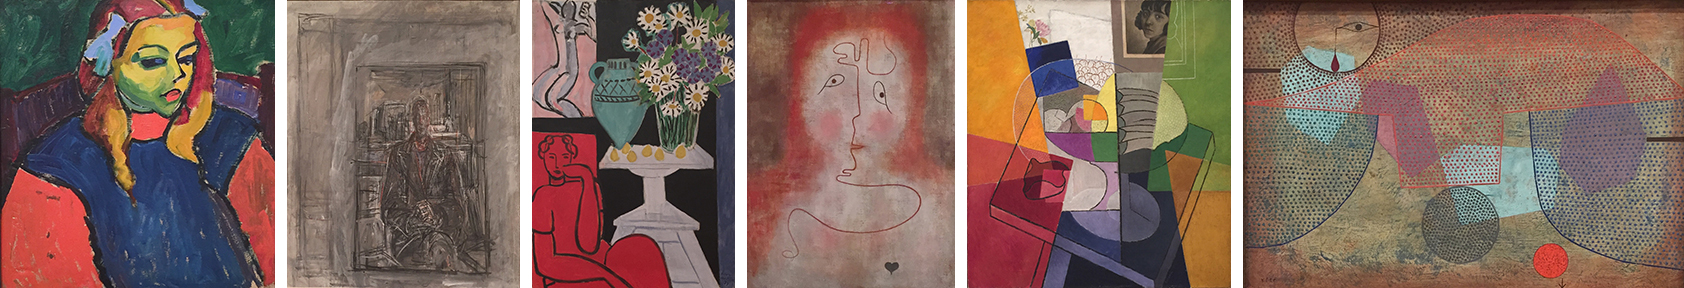 Some of the spectacular pieces we enjoyed in the contemporary collection at The Art Institute of Chicago (by Jawlensky, Giacometti, Matisse, Klee, Severini, and Klee)